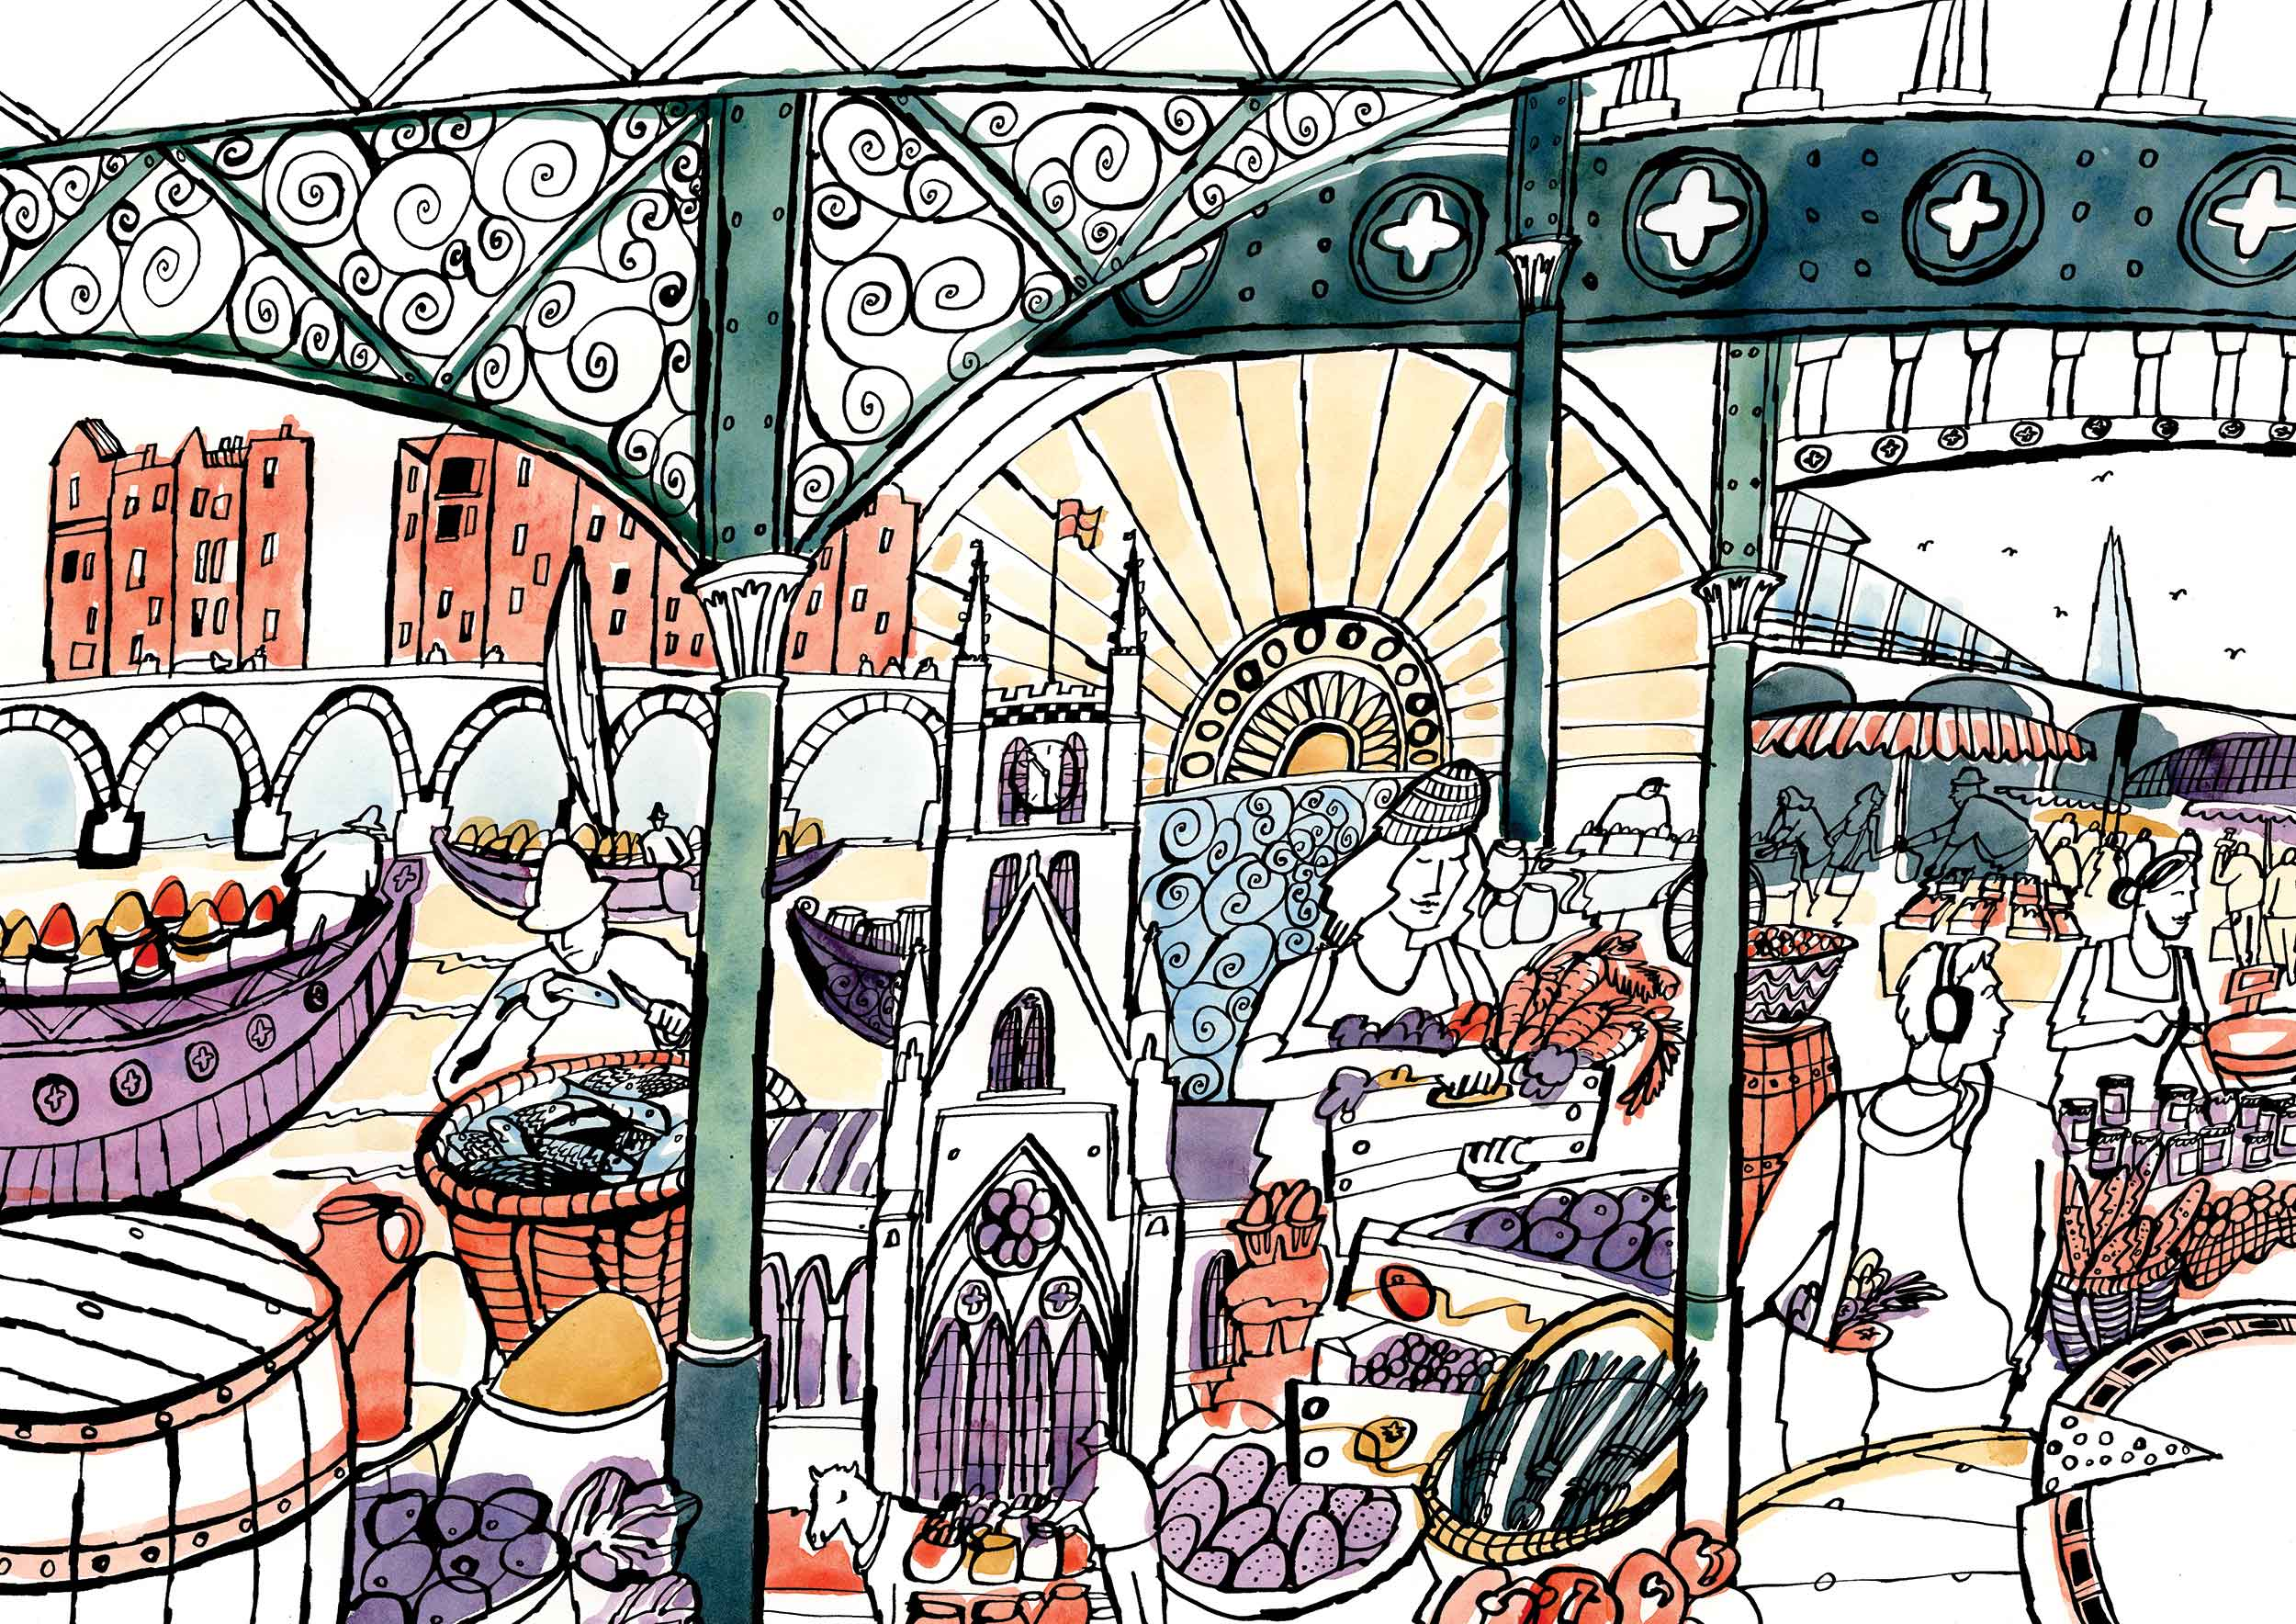 Borough Market at 1000 by James Oses